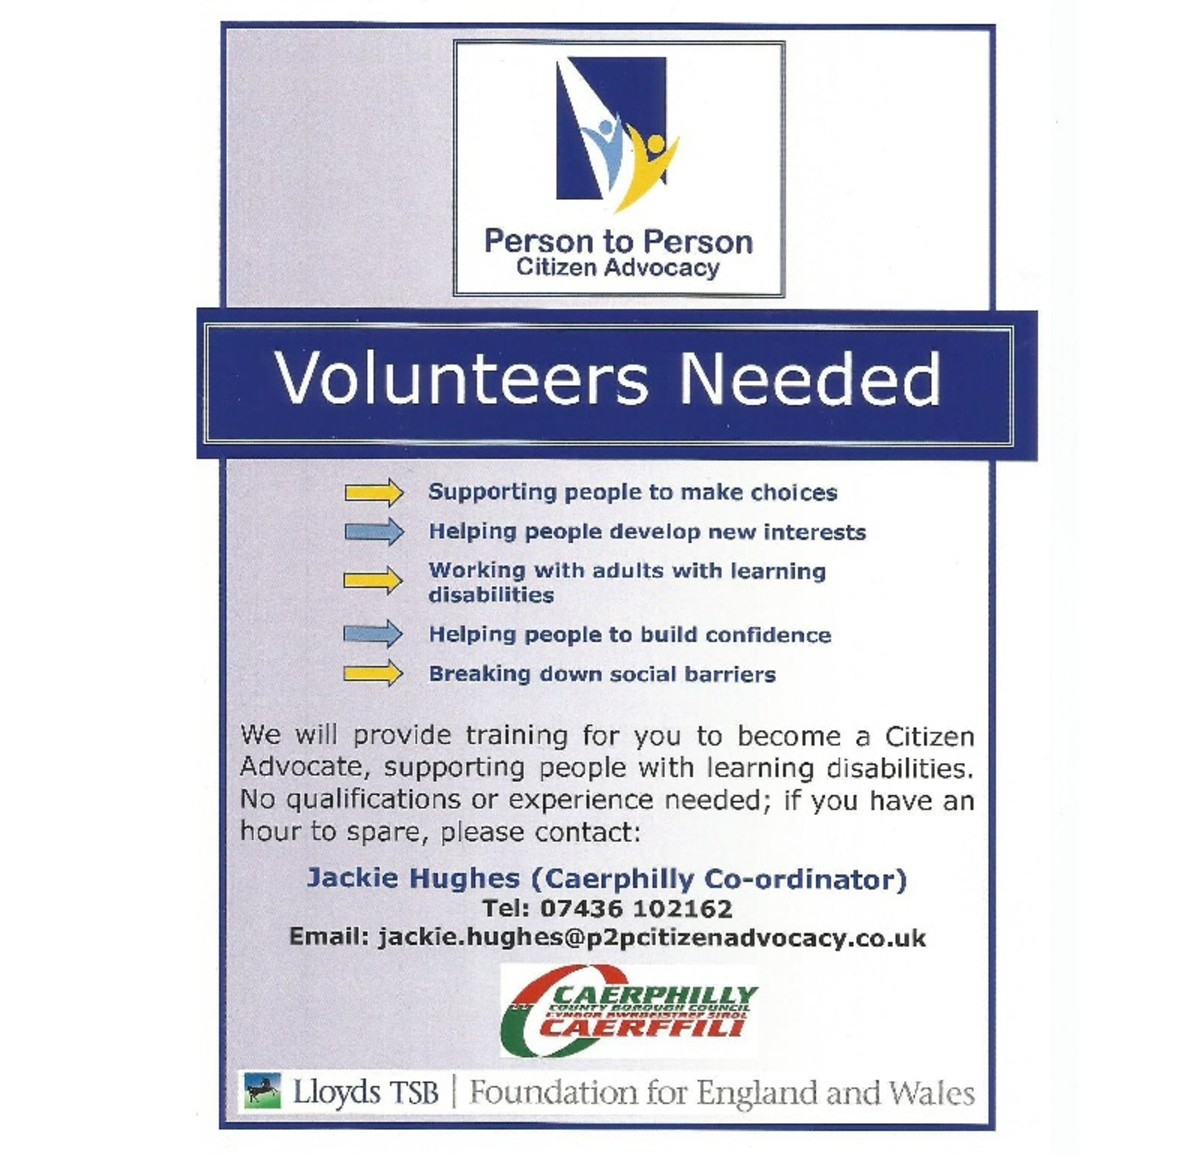 An example of a clear, concise volunteer recruitment poster.